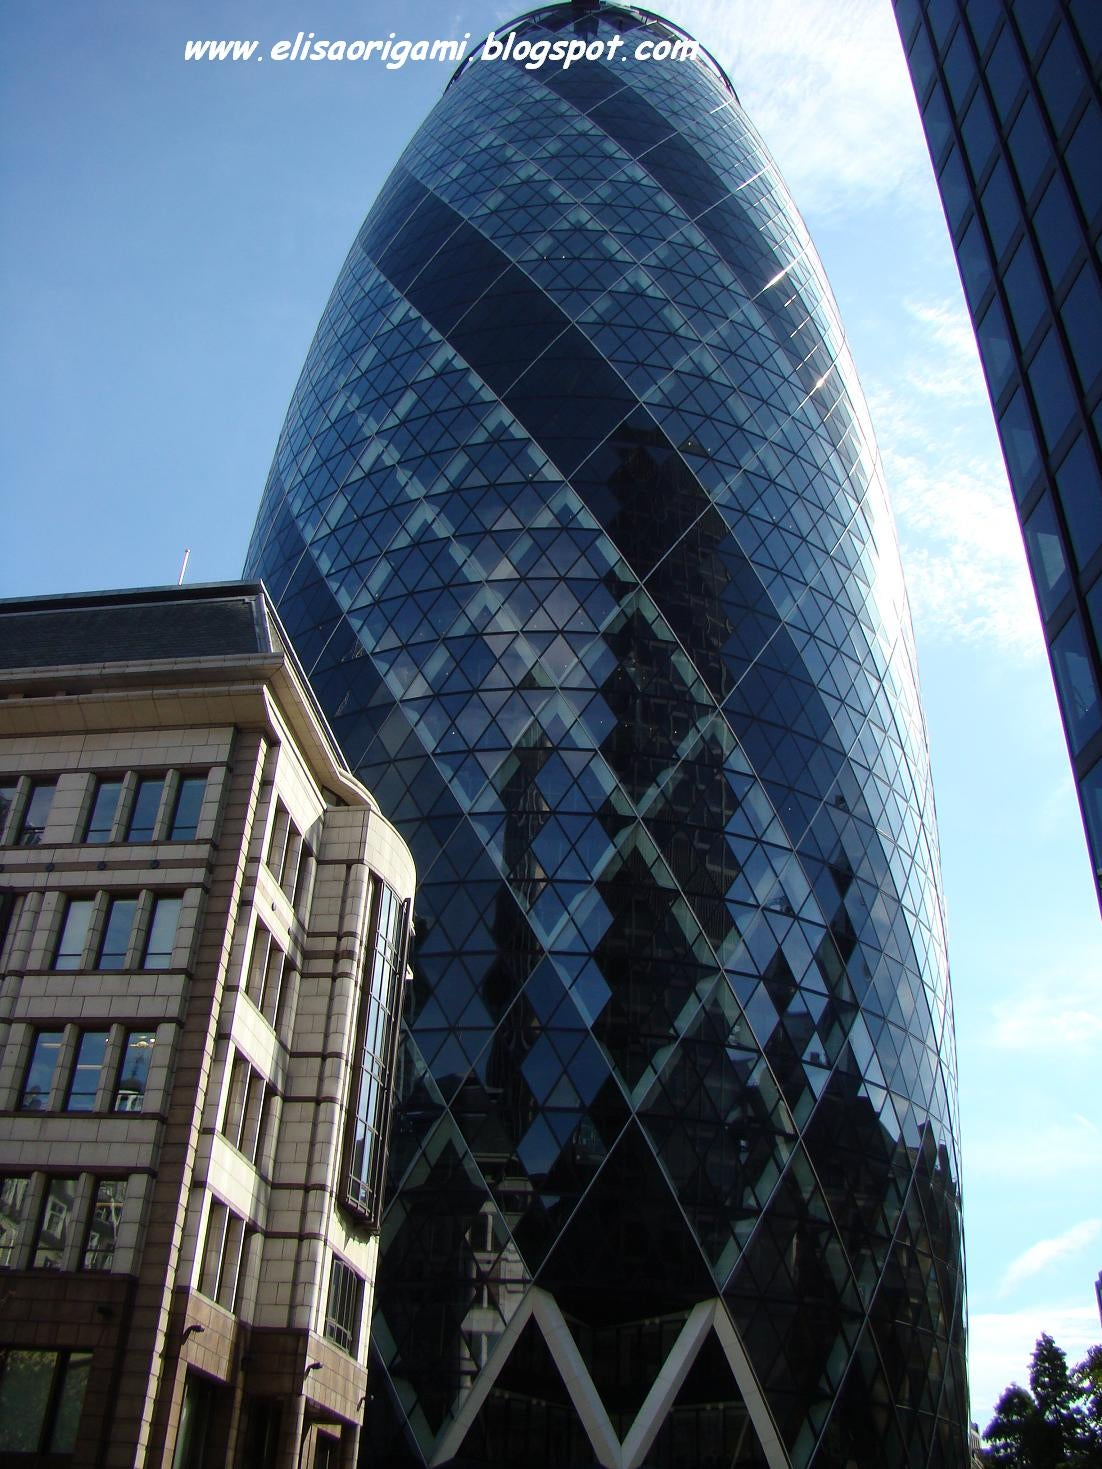 Condominio en Swiss Re Tower - Torre Gherkin